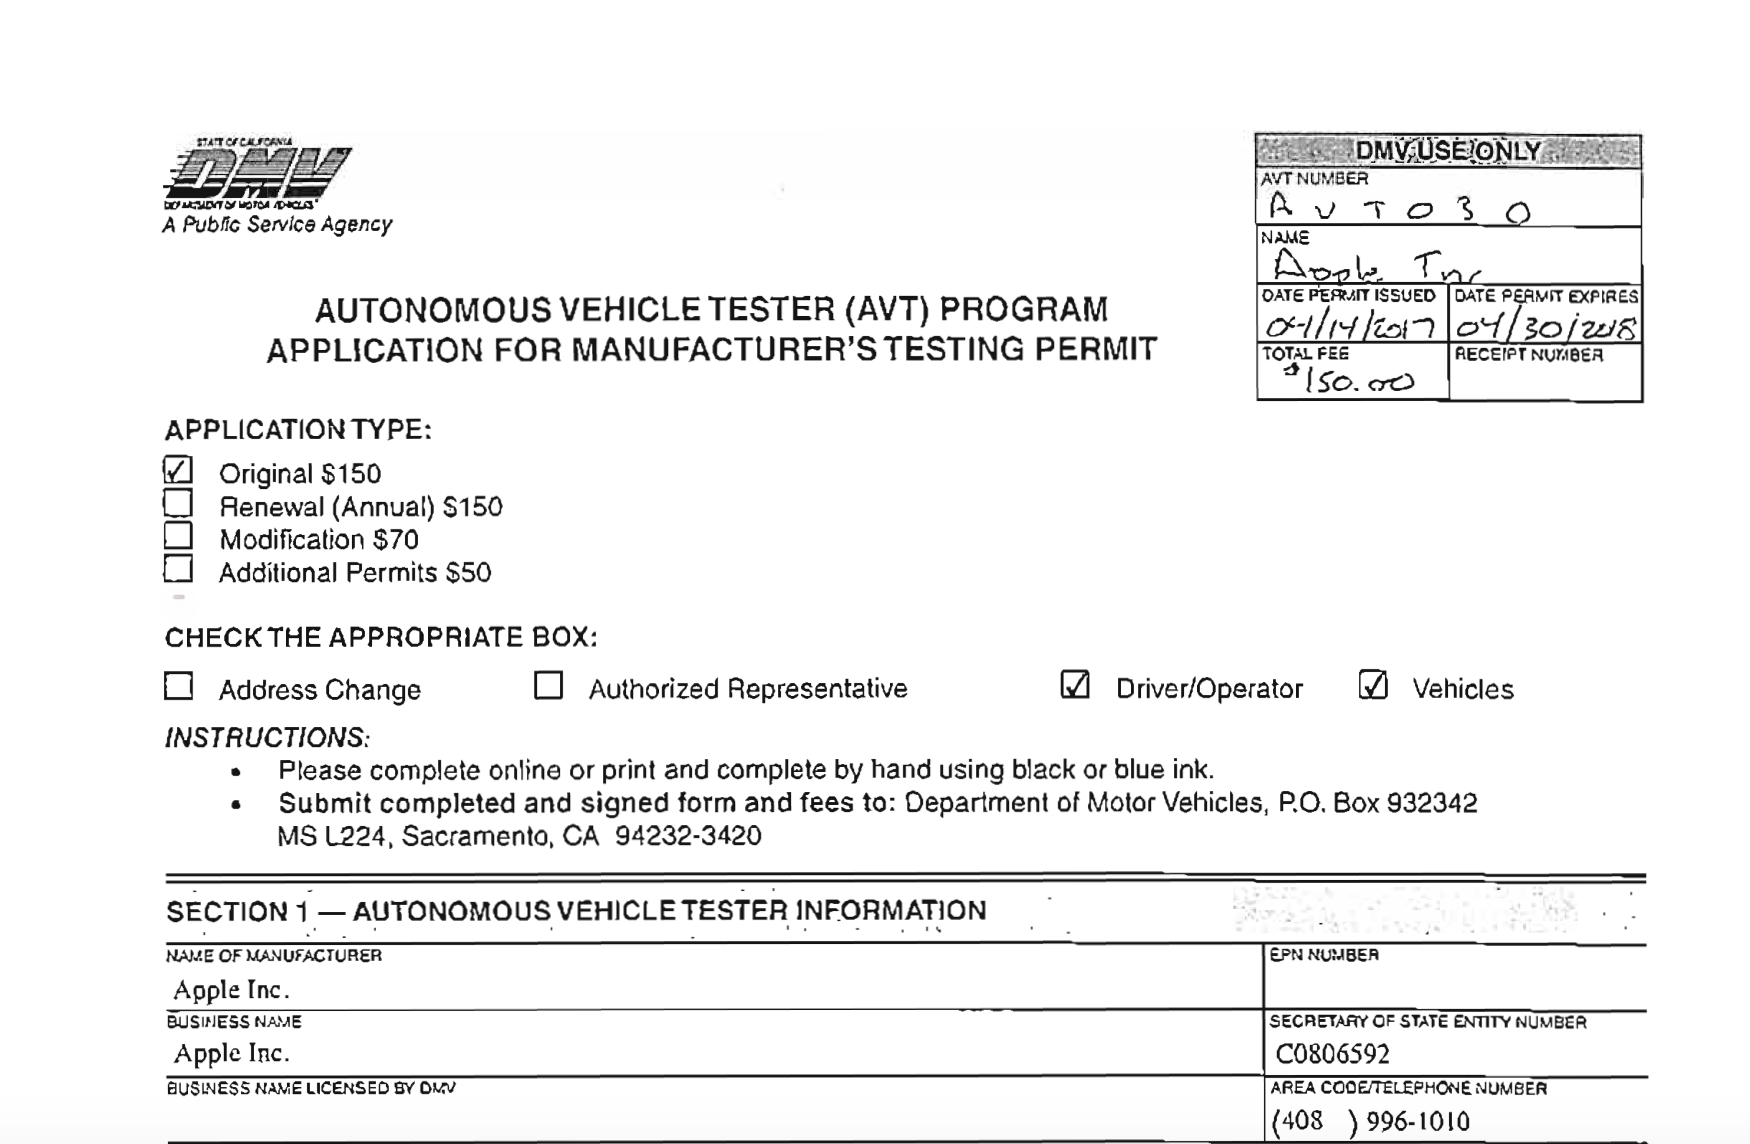 345912359-Autonomous-Vehicle-Tester-AVT-Program-Application-for-Manufacturer-s-Testing-Permit PDF Expert, 今天 at 下午12.39.54.png